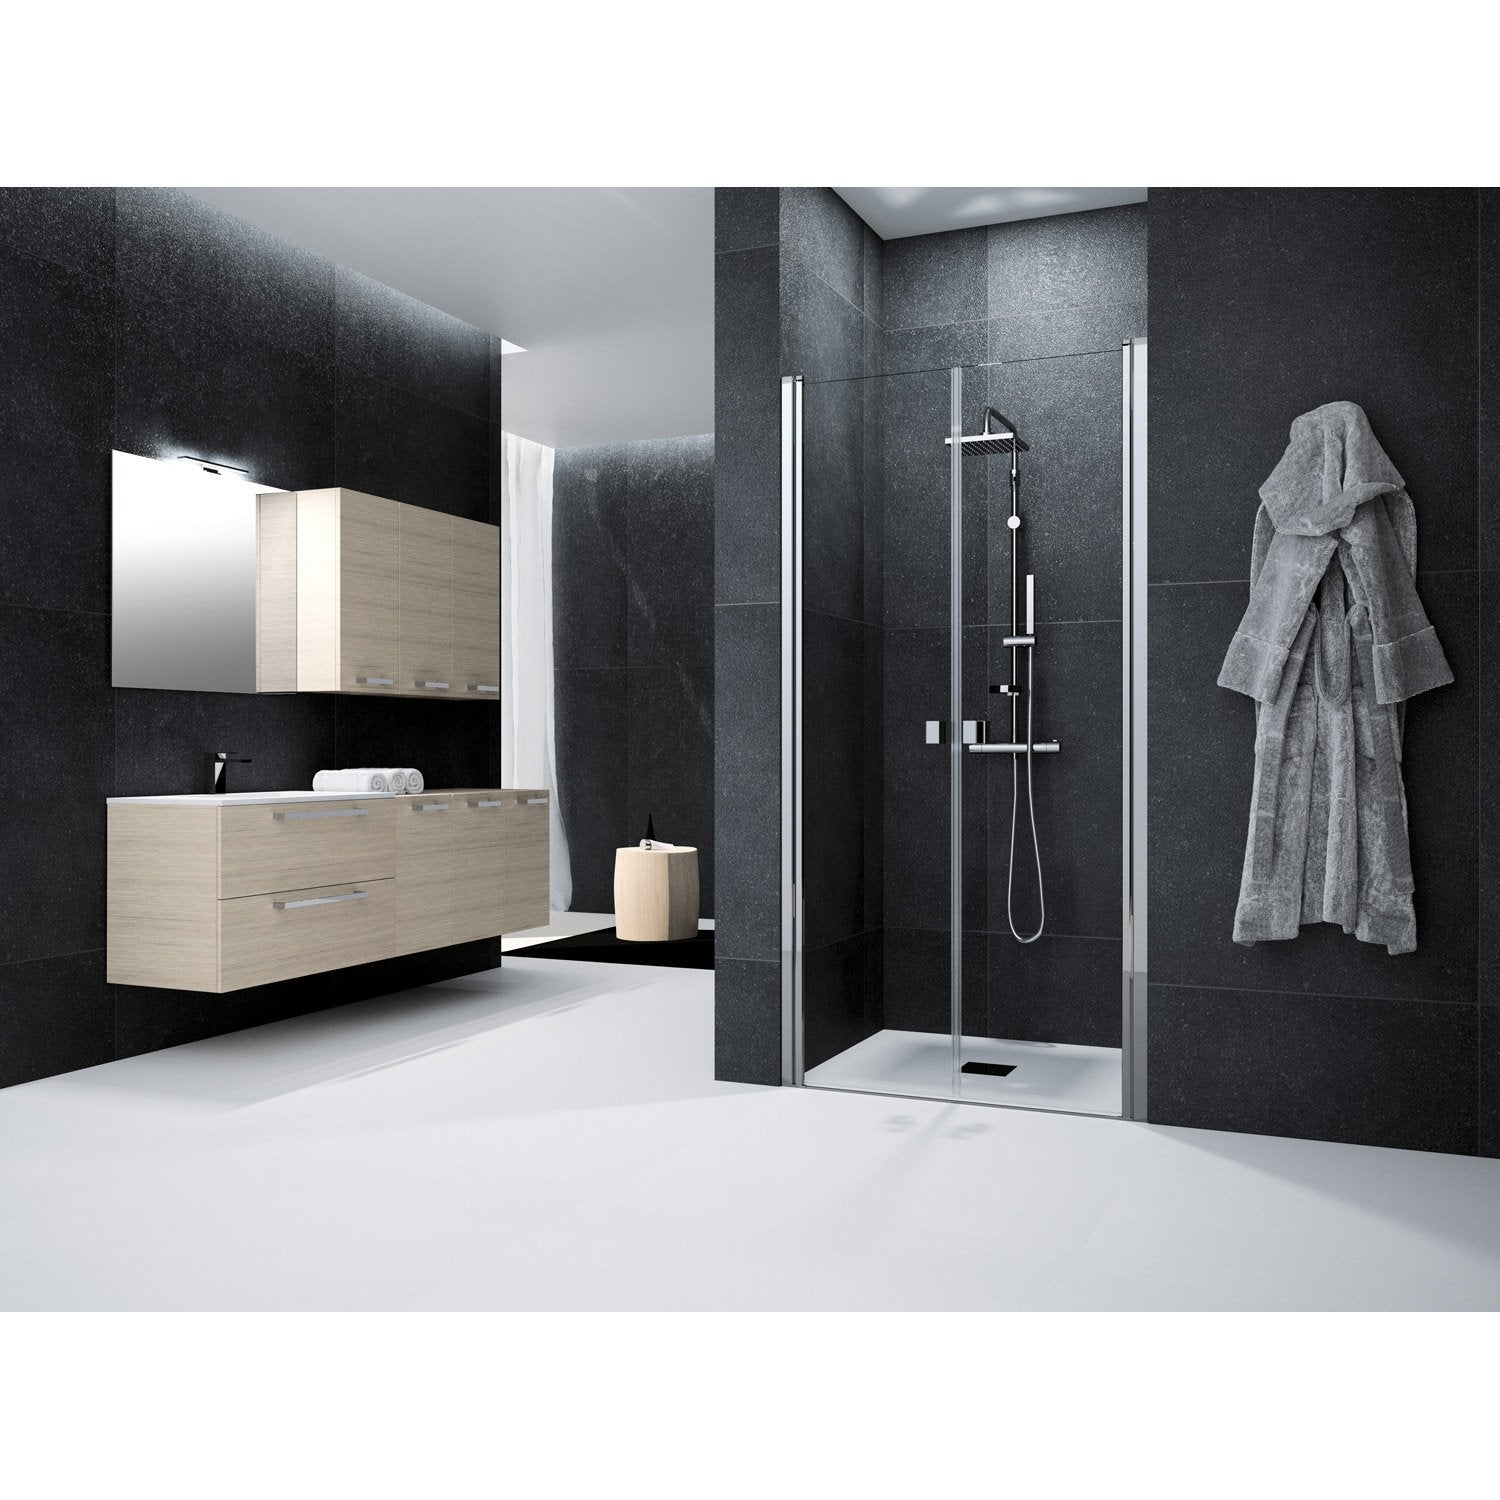 porte de douche battante 100 cm transparent neo leroy merlin. Black Bedroom Furniture Sets. Home Design Ideas